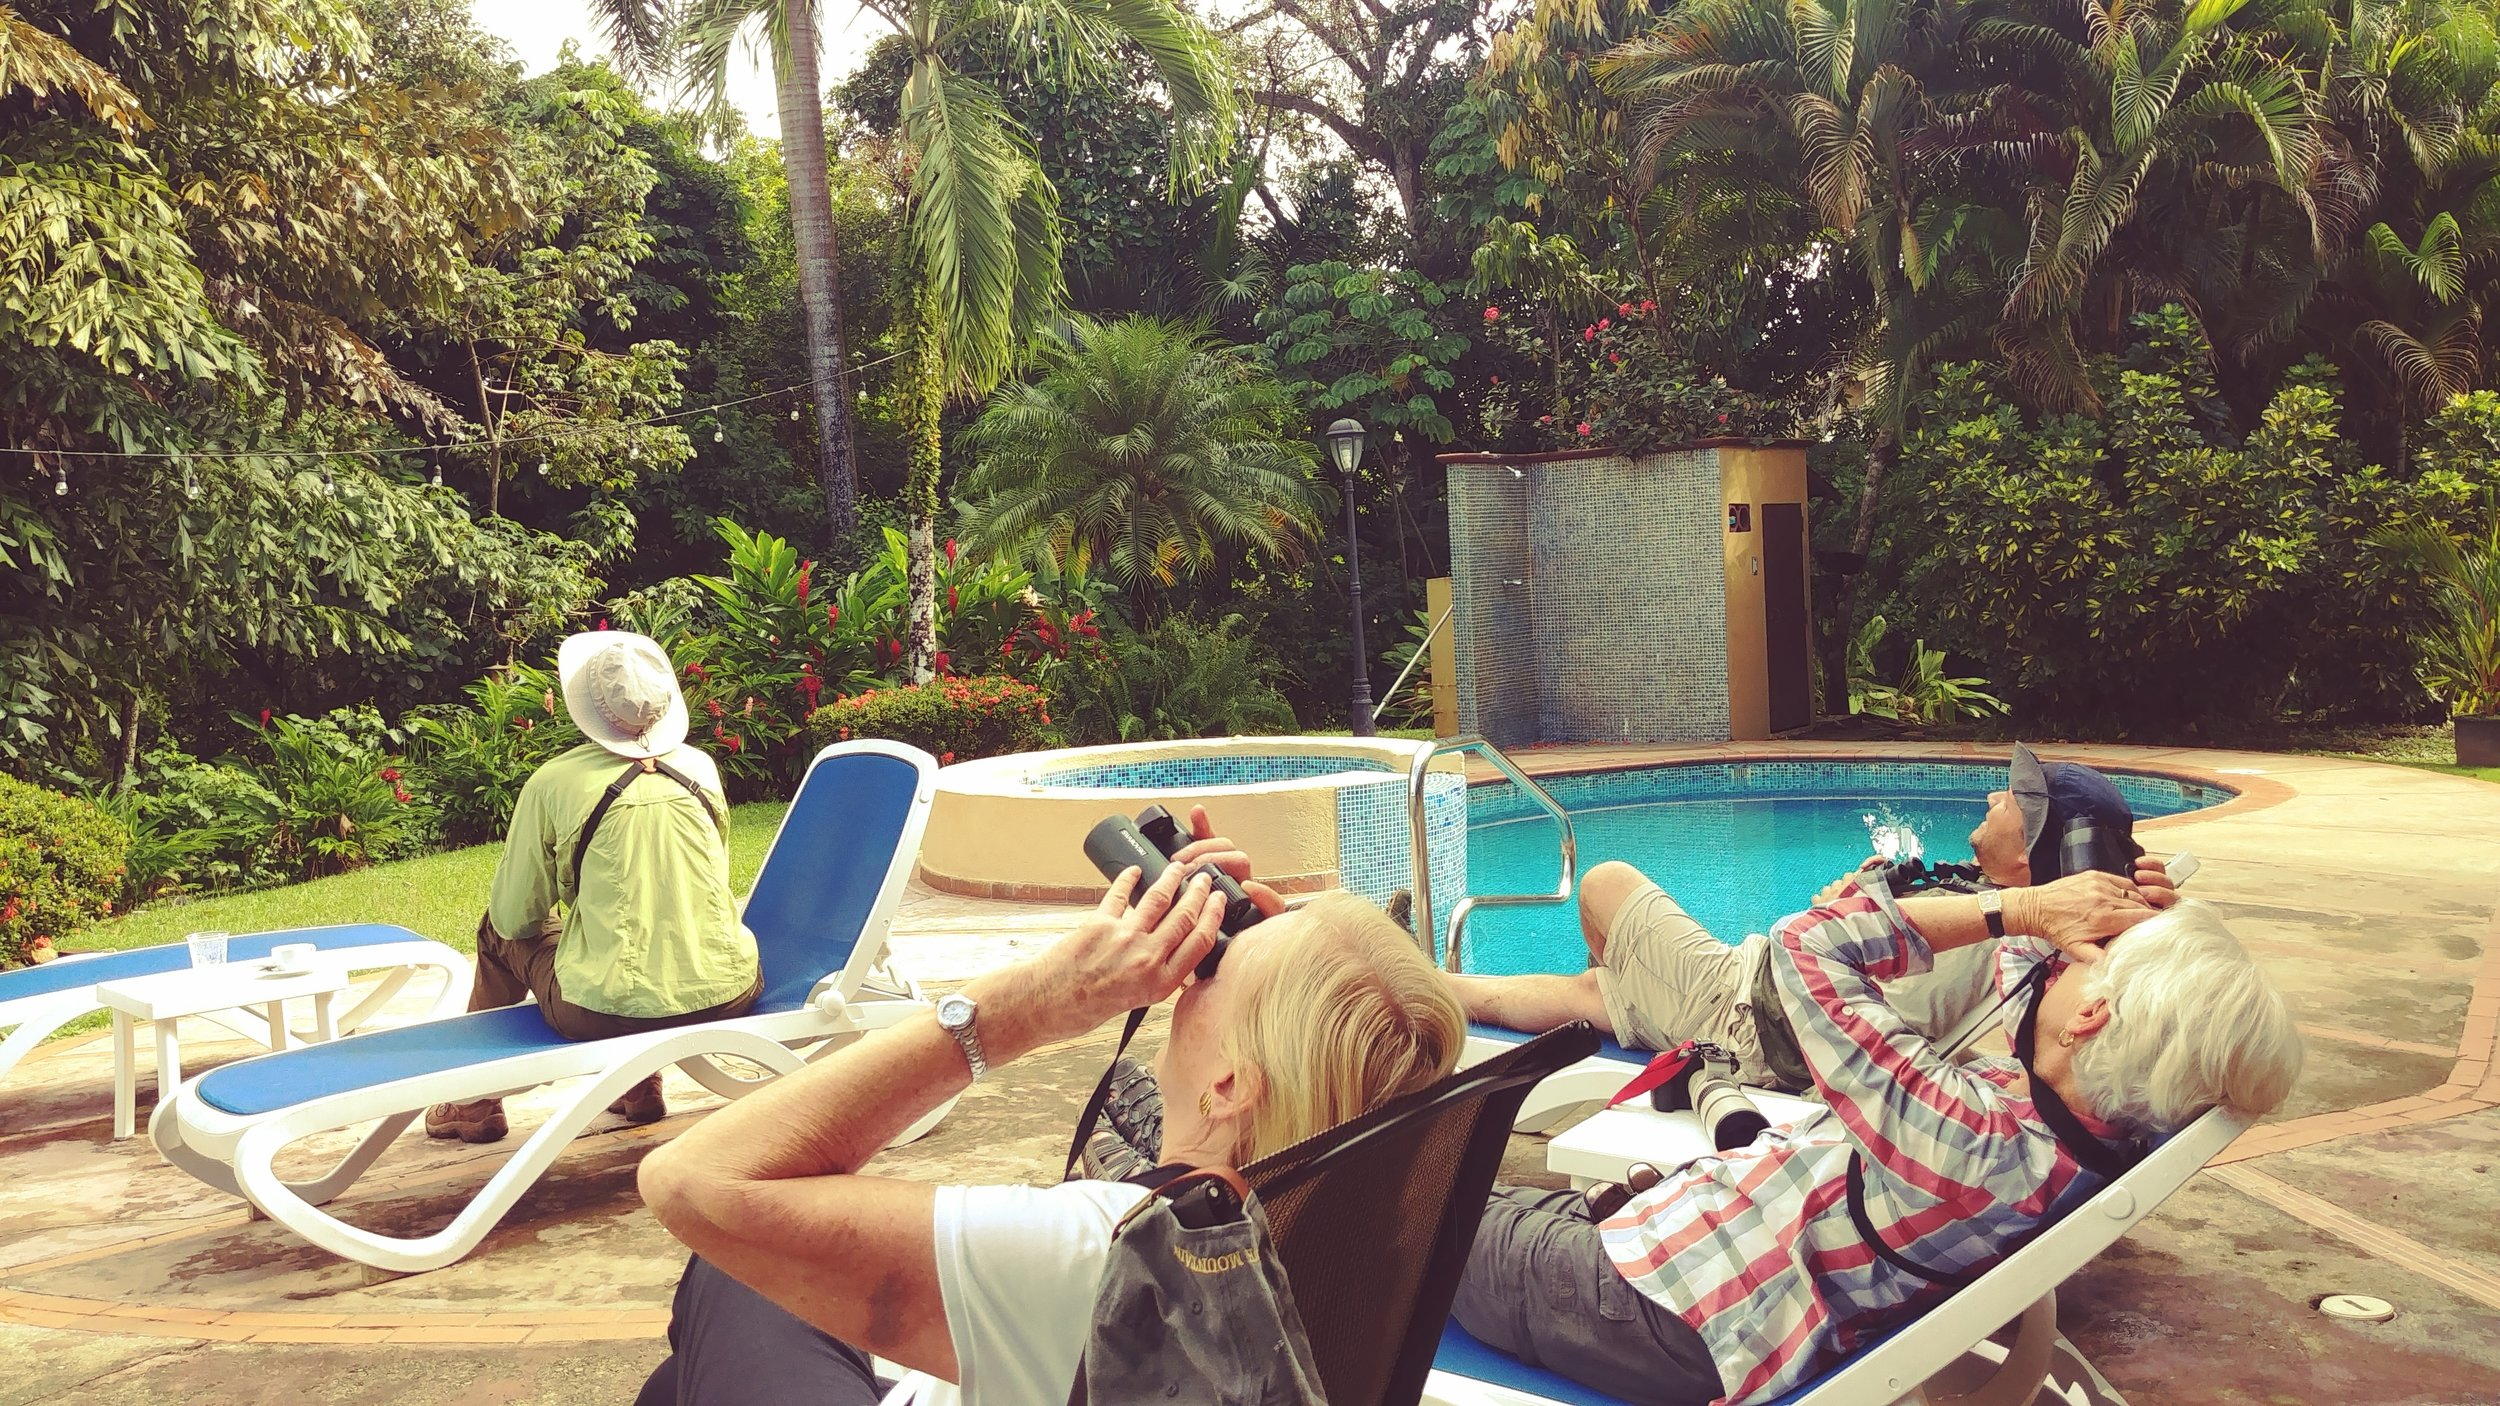 Bird-watching by the pool, photo by Laurie Goodrich.